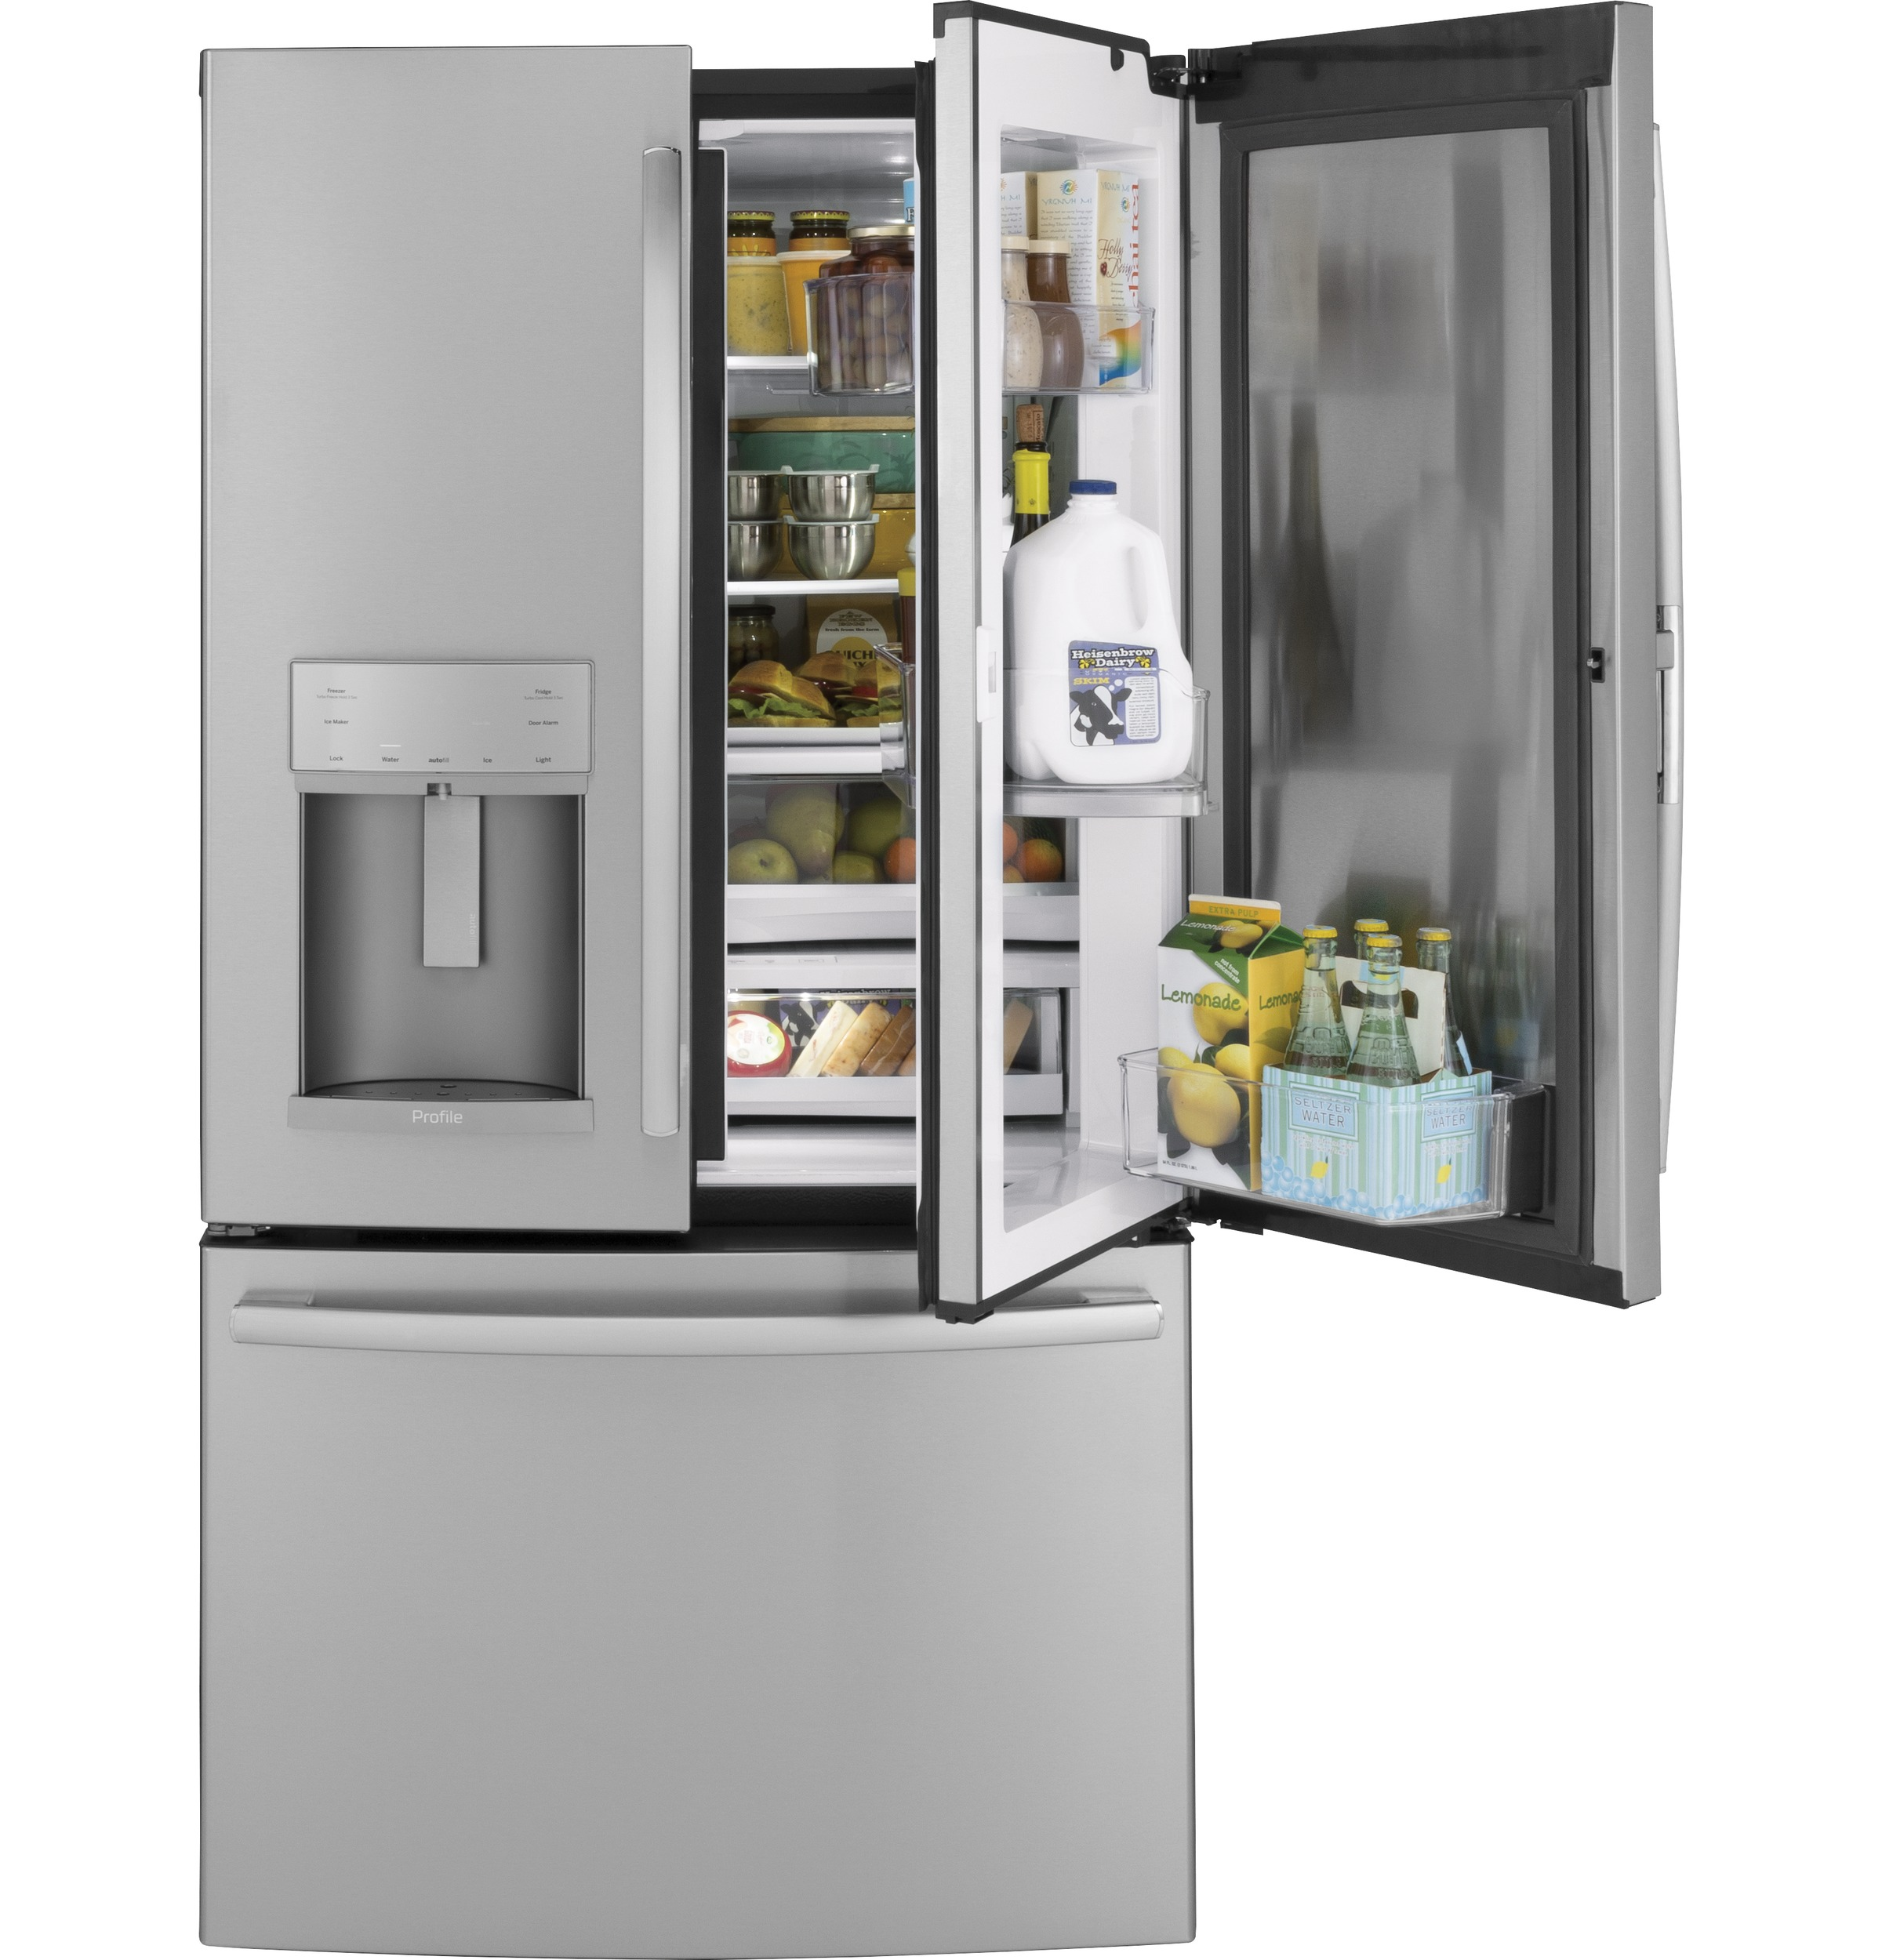 GE Profile™ Series 22.2 Cu. Ft. Counter-Depth French-Door Refrigerator